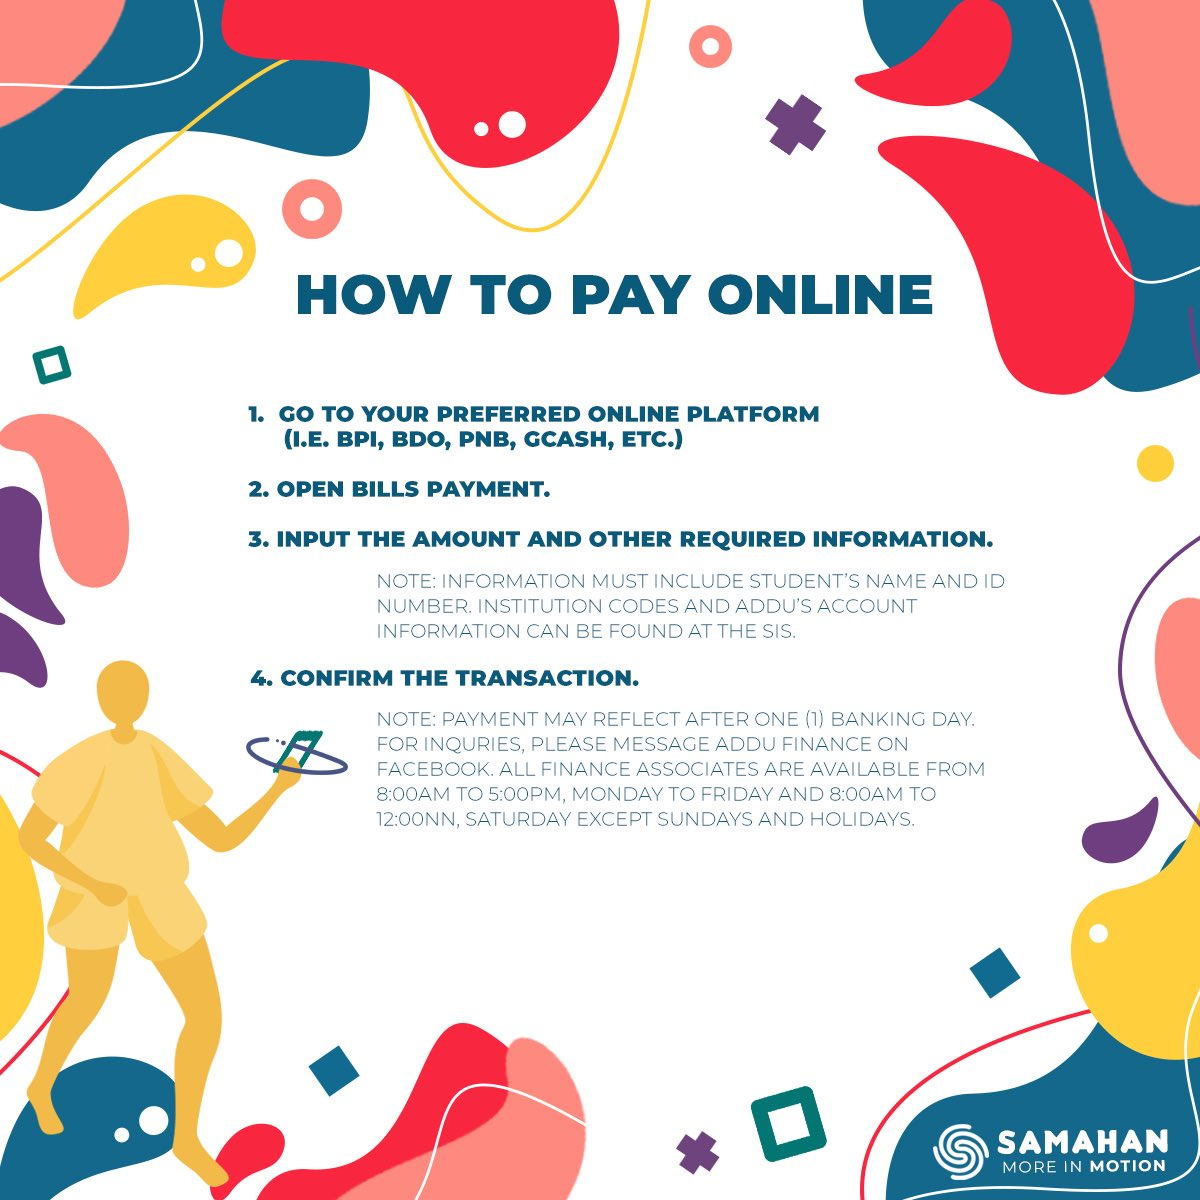 #SAMAHANHelpPortal | Here are the steps to pay online 📱